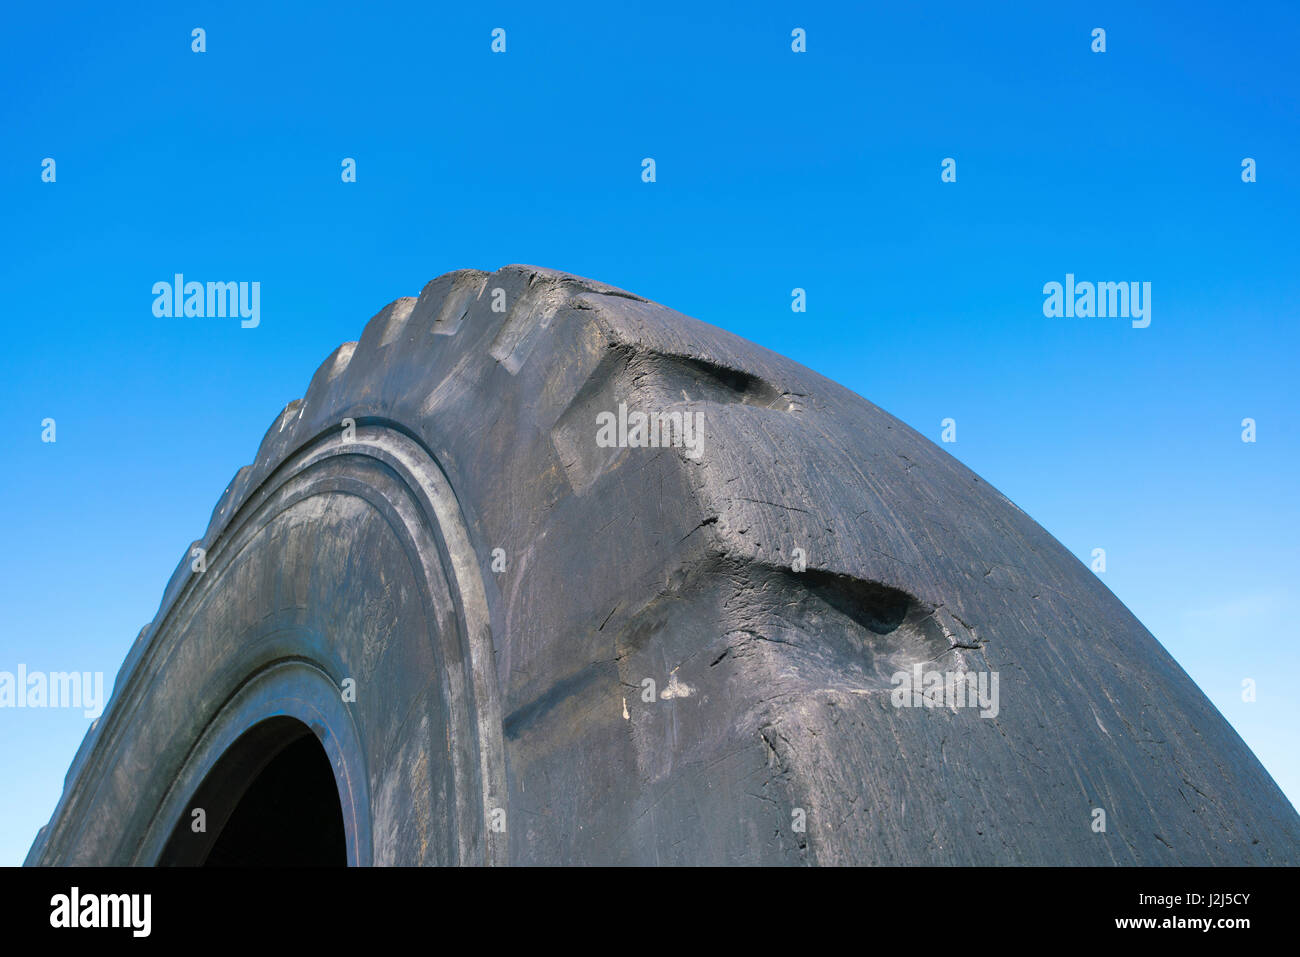 Worn rubber tyre, close up. - Stock Image